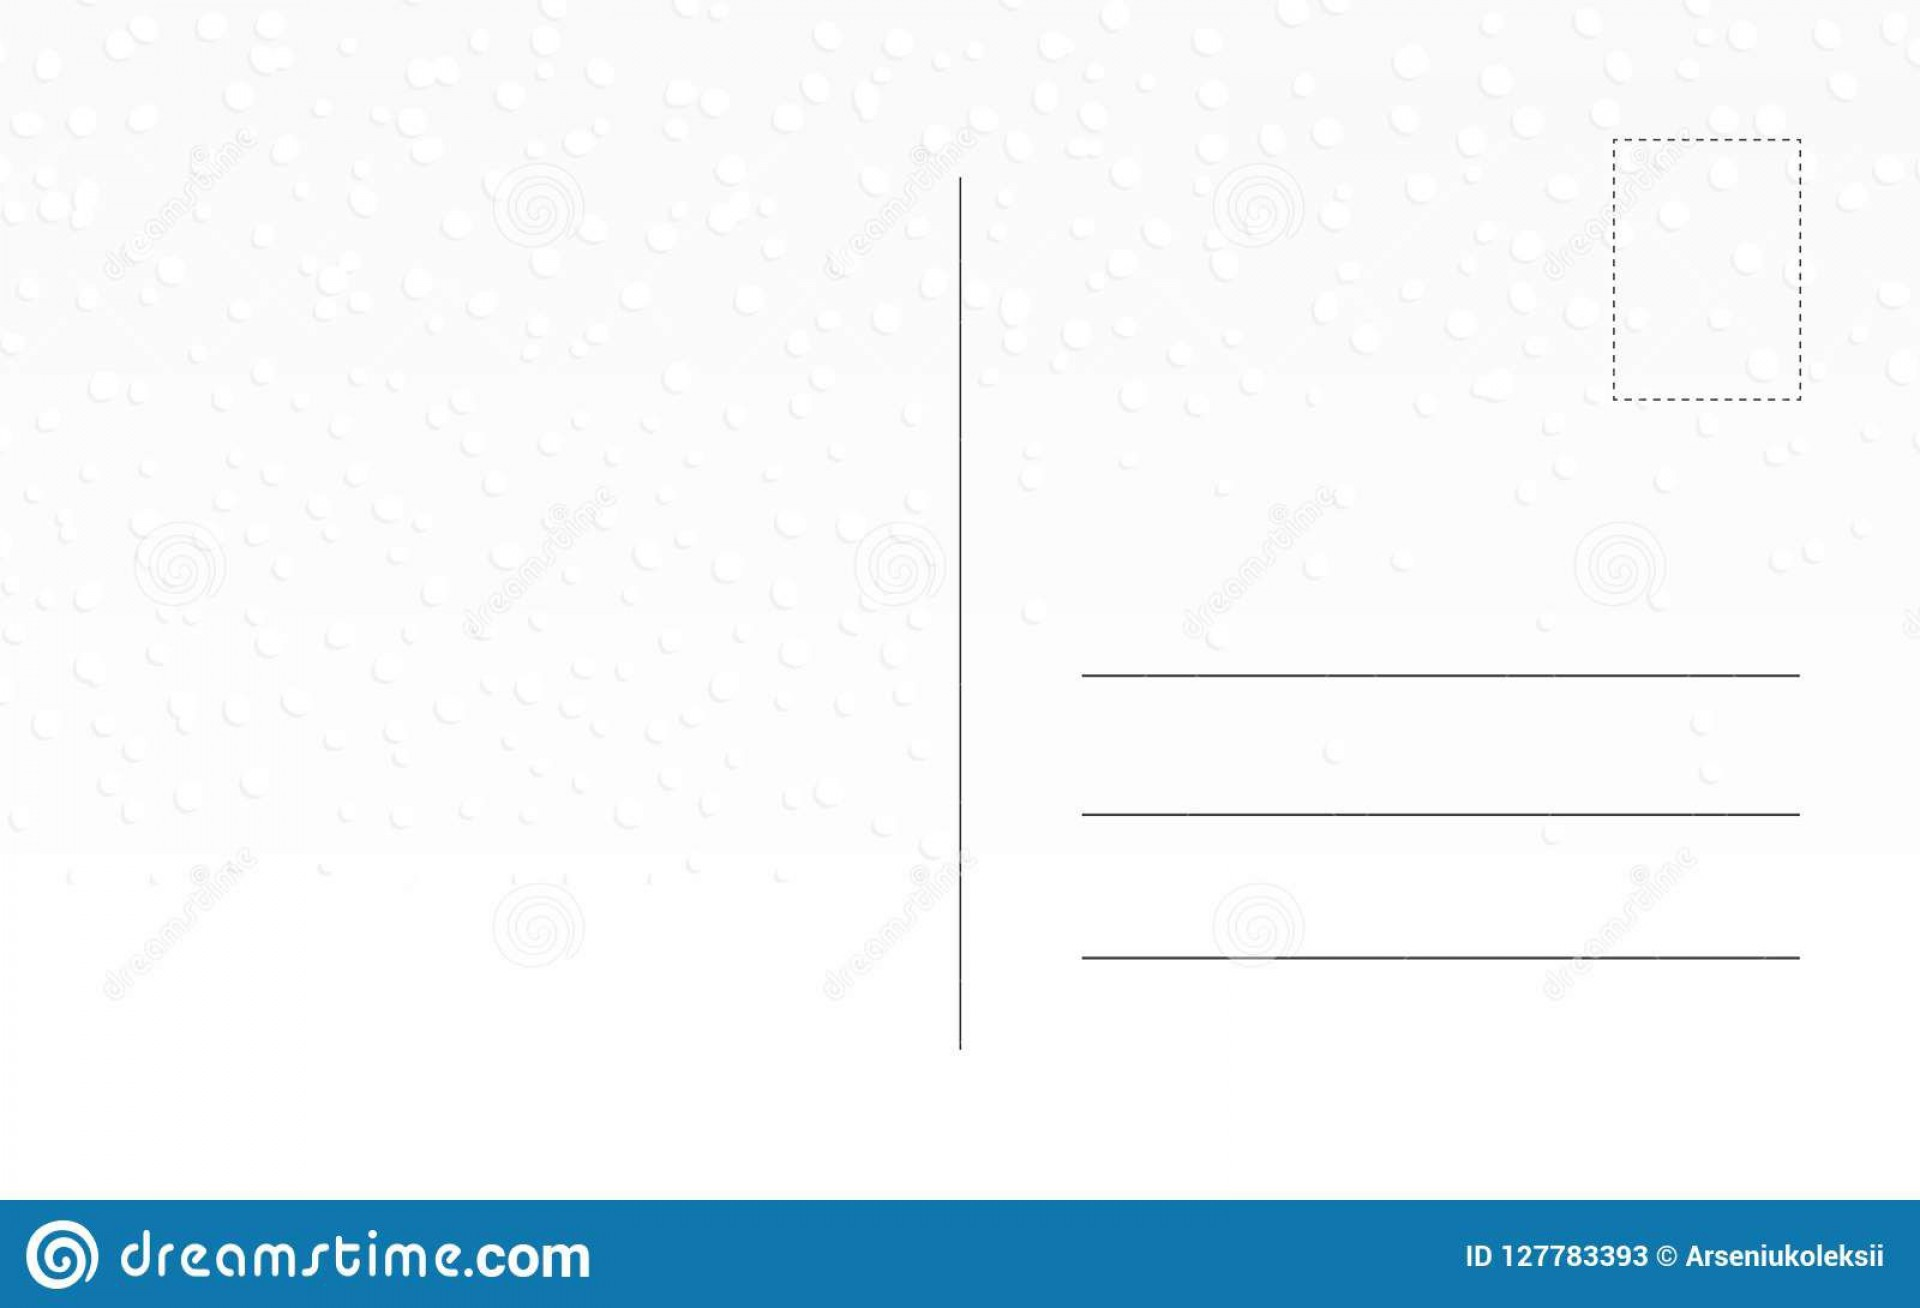 010 Imposing Postcard Template Front And Back Concept  Free Word1920